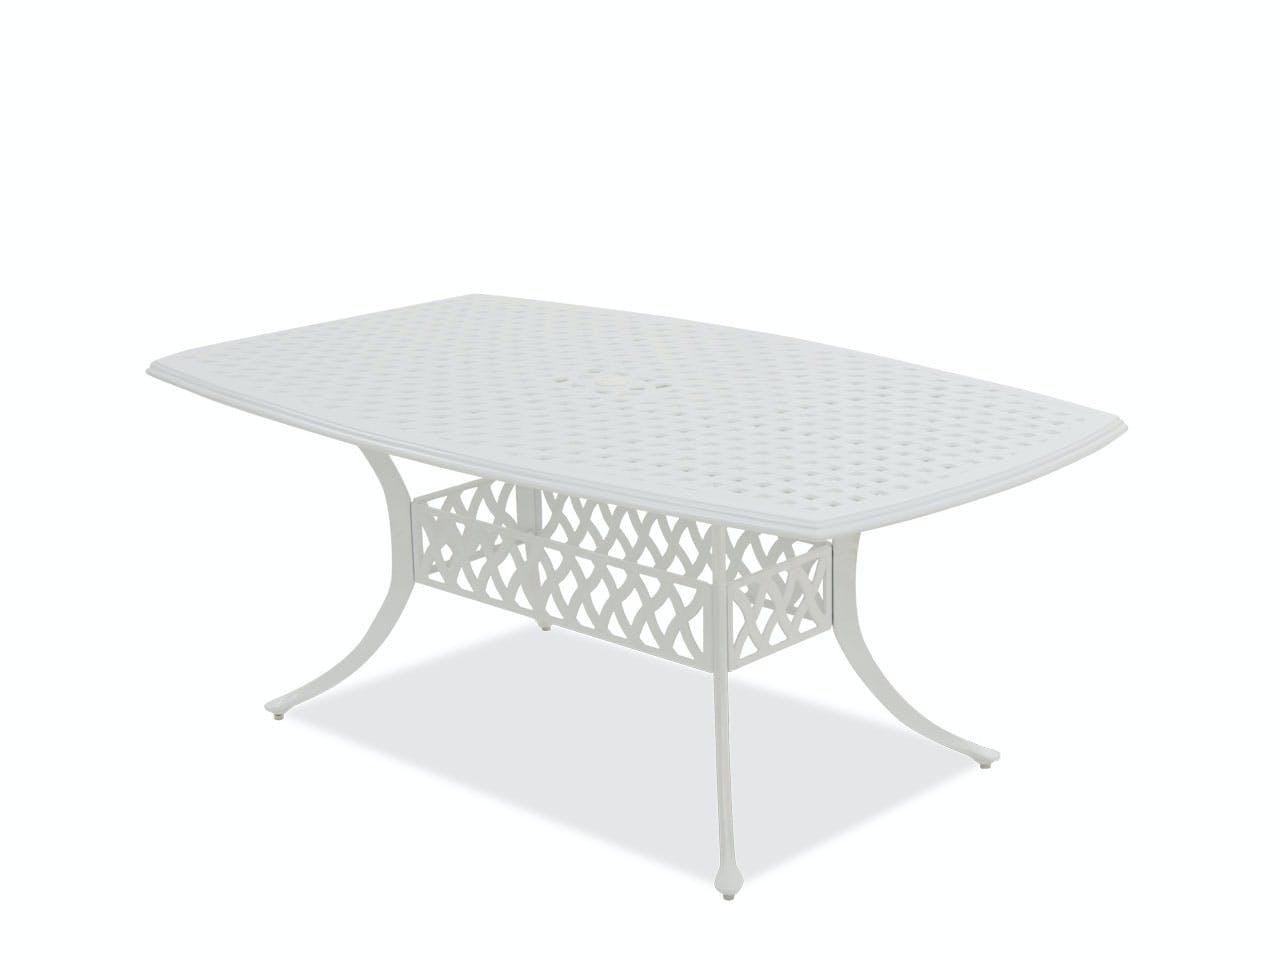 Outdoor Patio Yacht Club Matte White Cast Aluminum 72 X 42 In Dining Table 7495310 Fortunoff